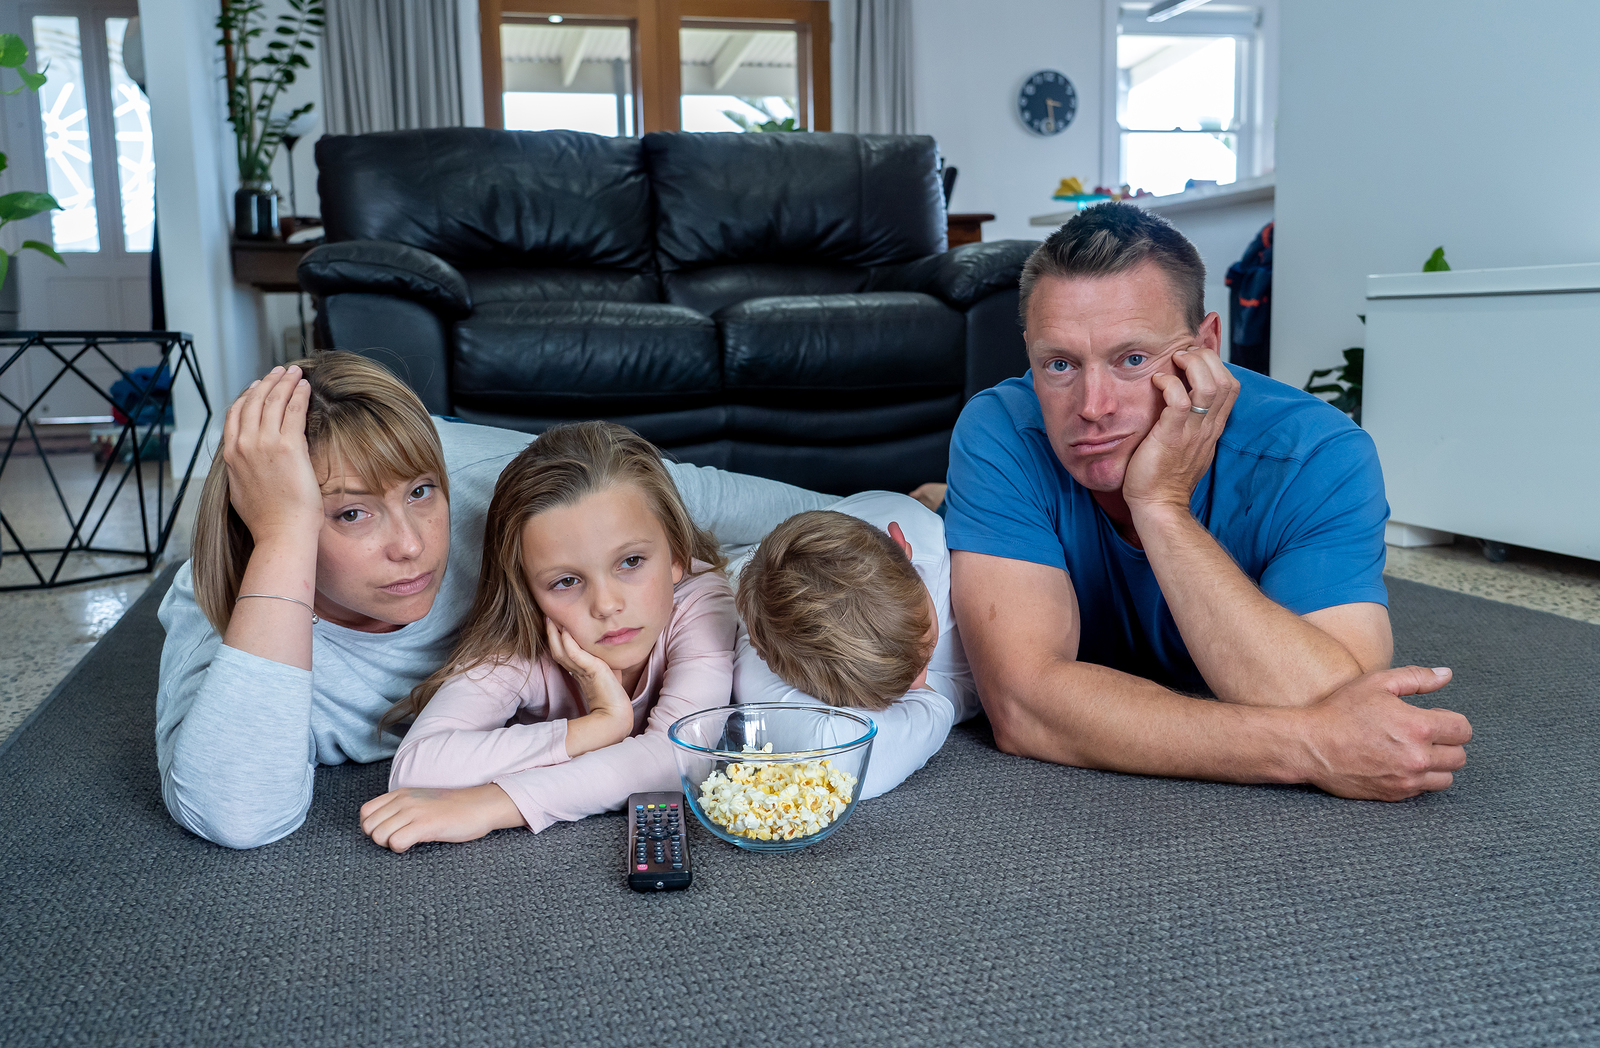 Family bored while sheltering in place